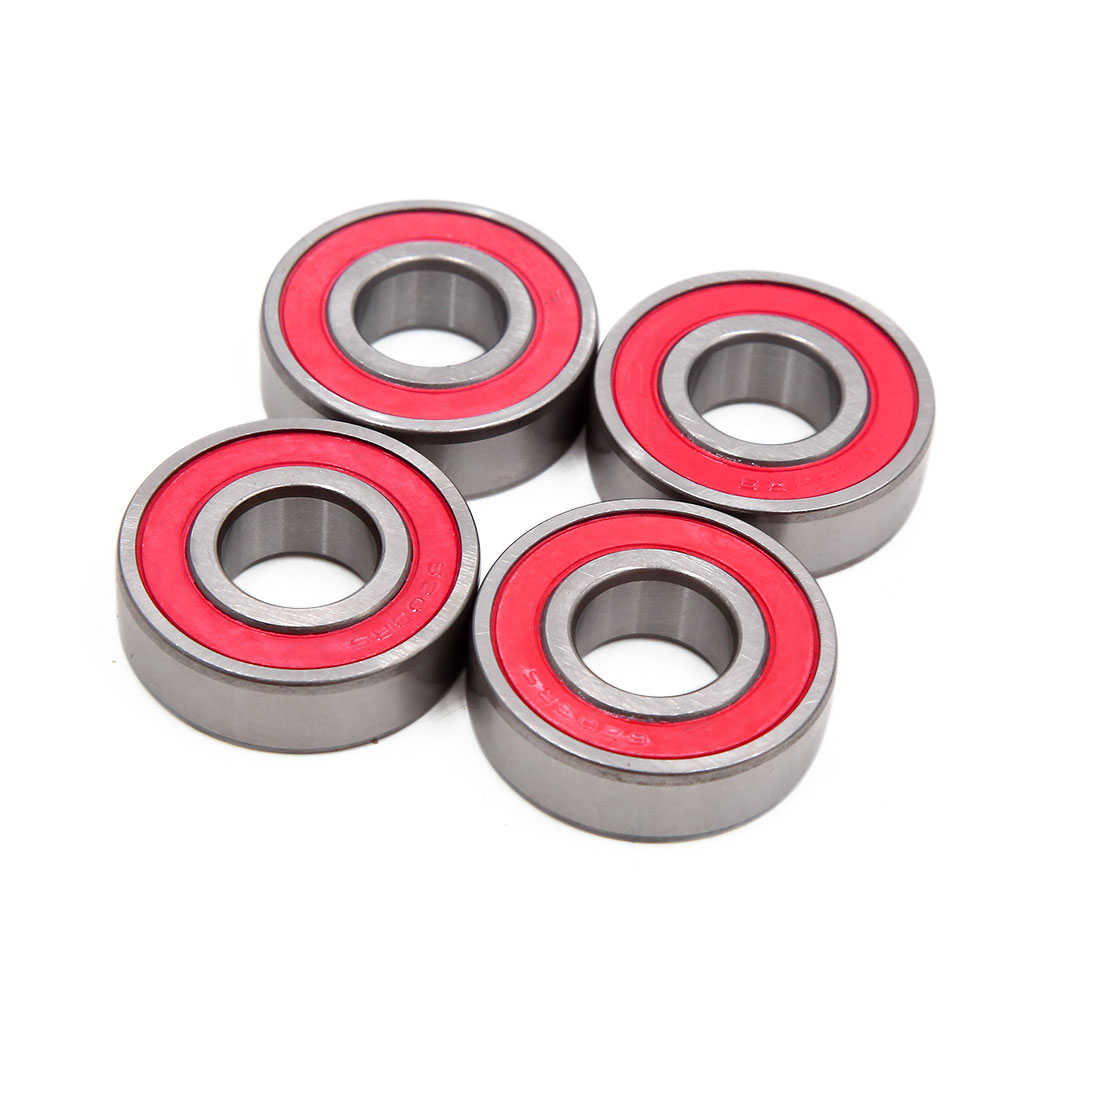 4pcs 6203RS Scooter Motorcycle Sealed Deep Groove Ball Bearing 40 x 17 x 12mm